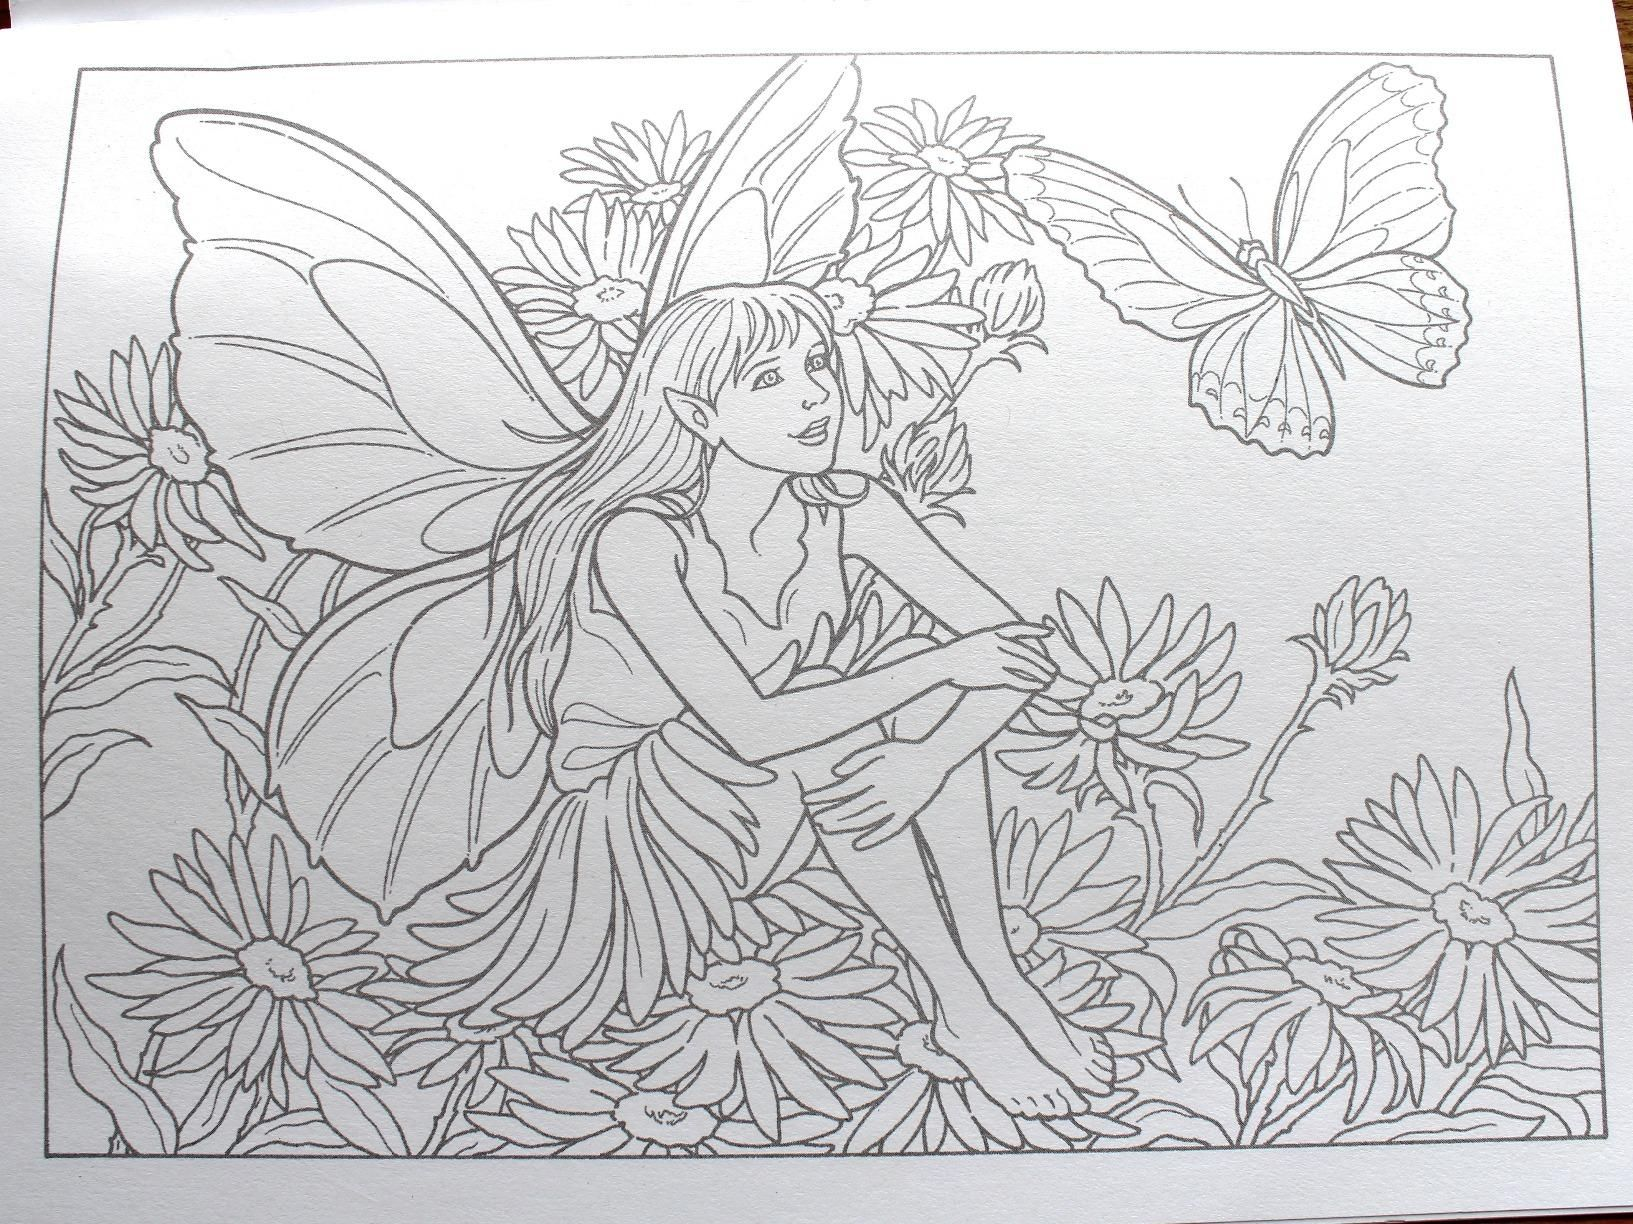 fairies to paint or color dover art coloring book darcy may